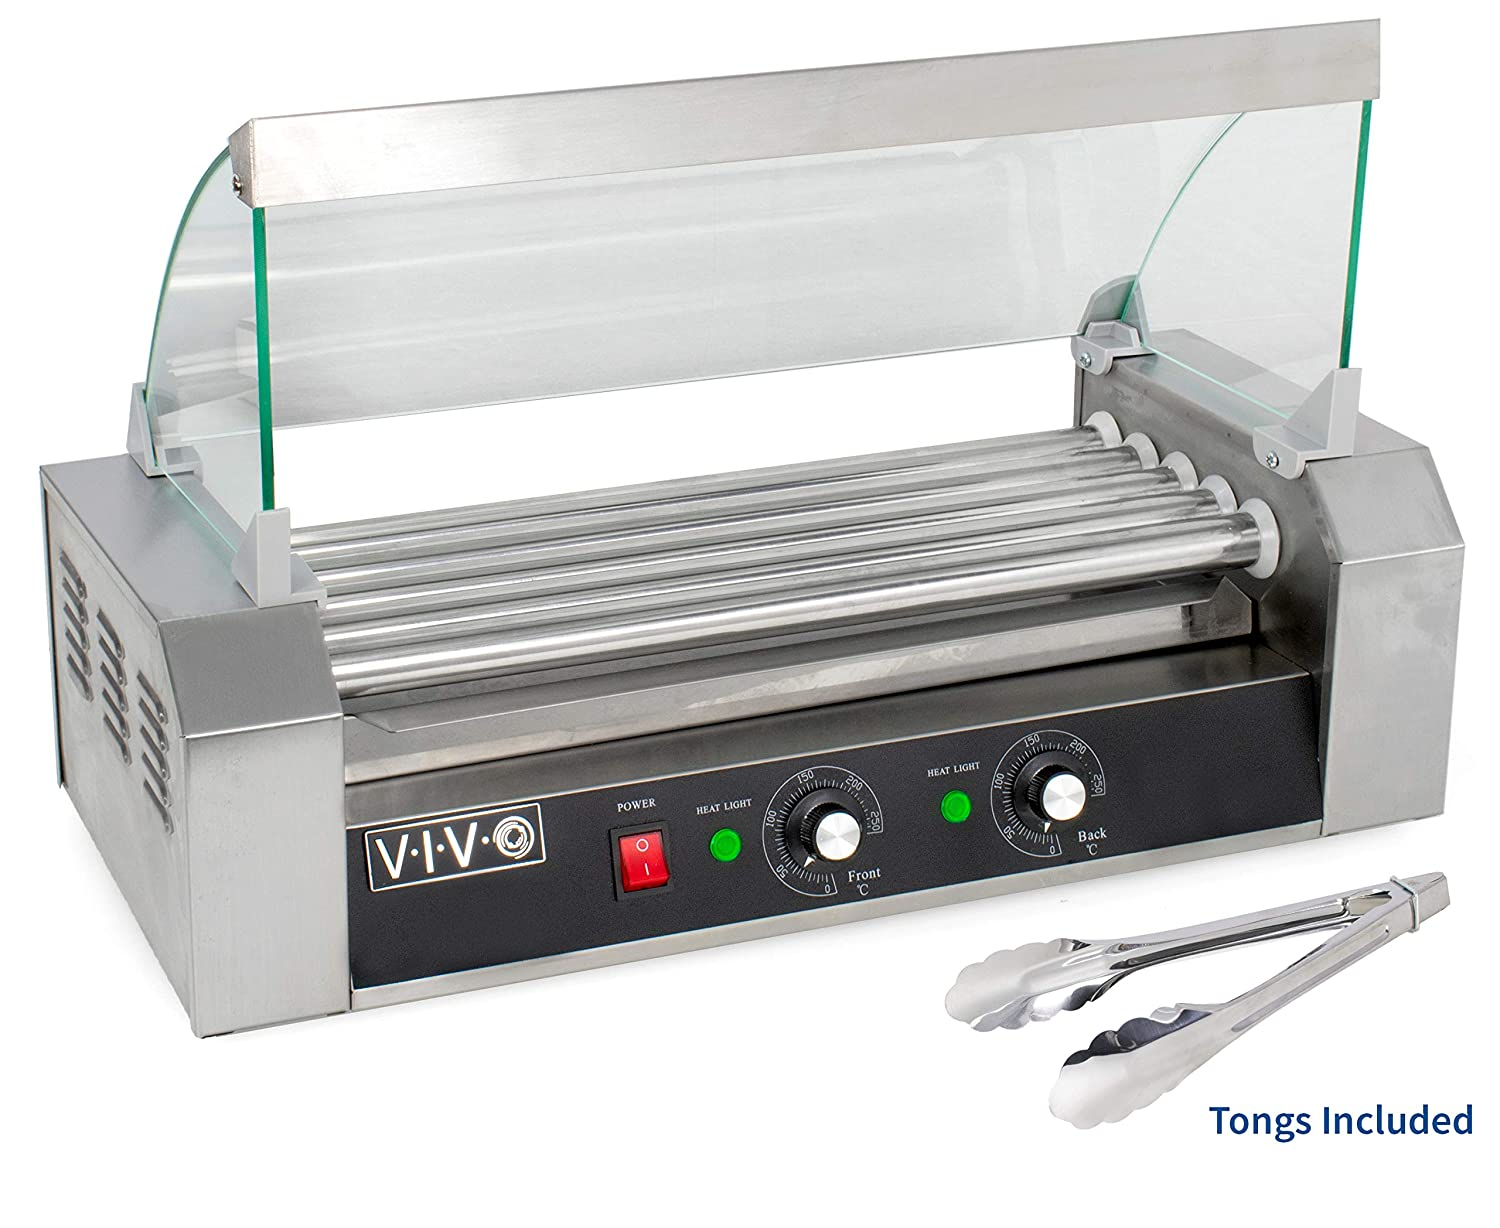 VIVO Electric 12 Hot Dog & Five (5) Roller Grill Cooker Warmer Machine with Cover (HOTDG-V205)